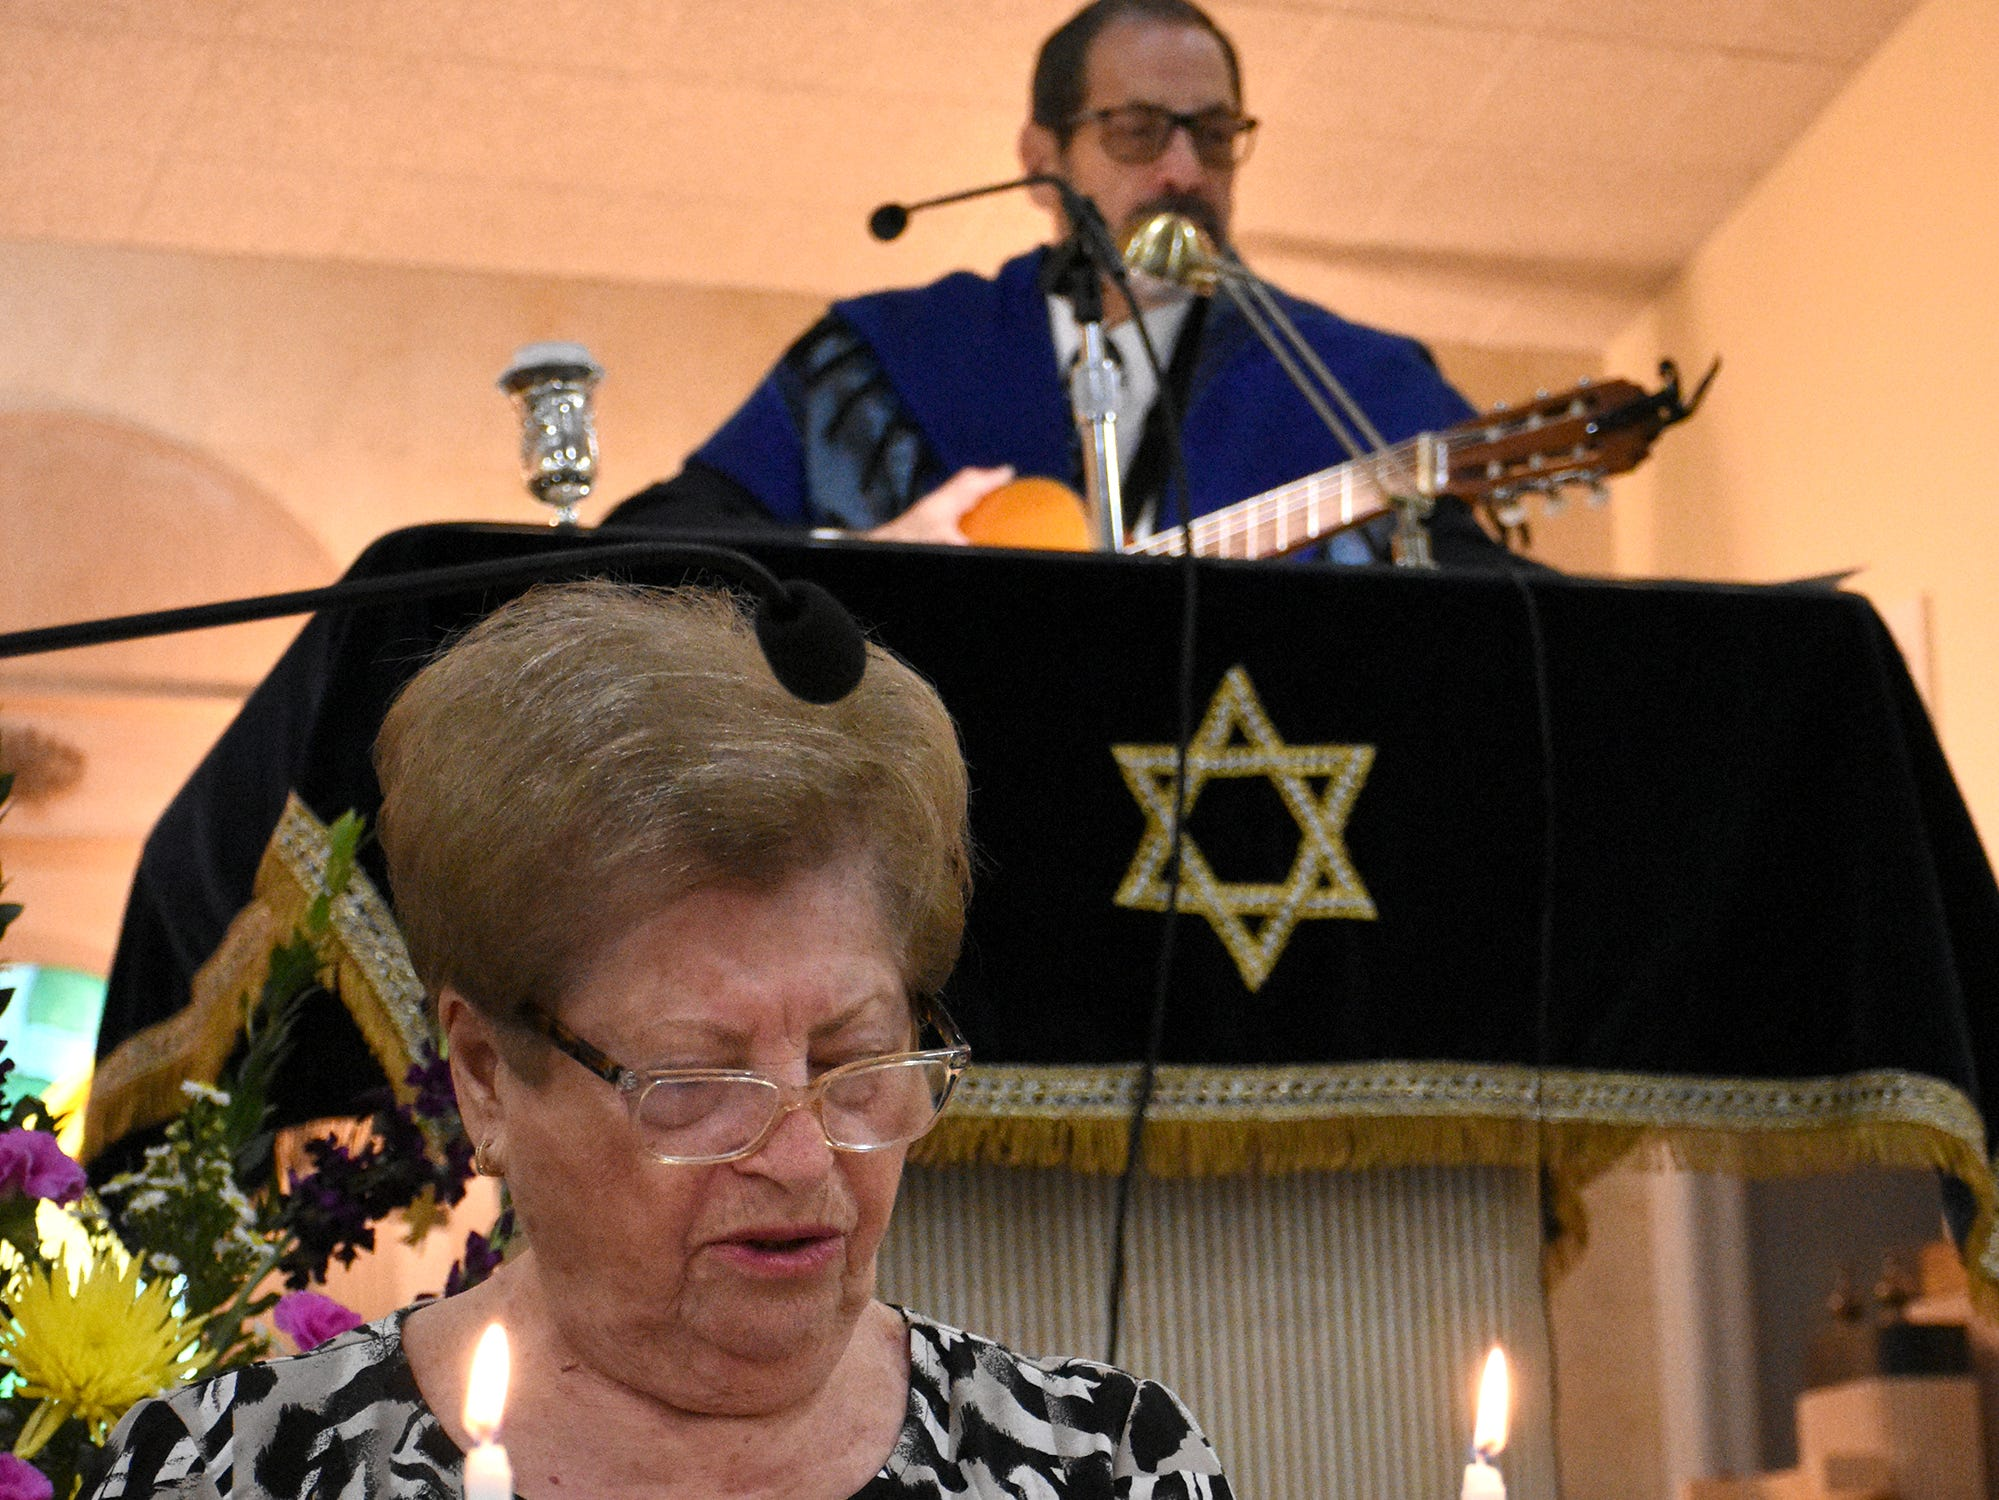 Eta Gluzband reads a prayer with help from Rabbi Mark Gross. The Jewish Congregation of Marco Island held a Shabbat service Friday evening marking the 80th anniversary of Kristallnacht, when Nazi Germany brought perseution of Jews out into the open.